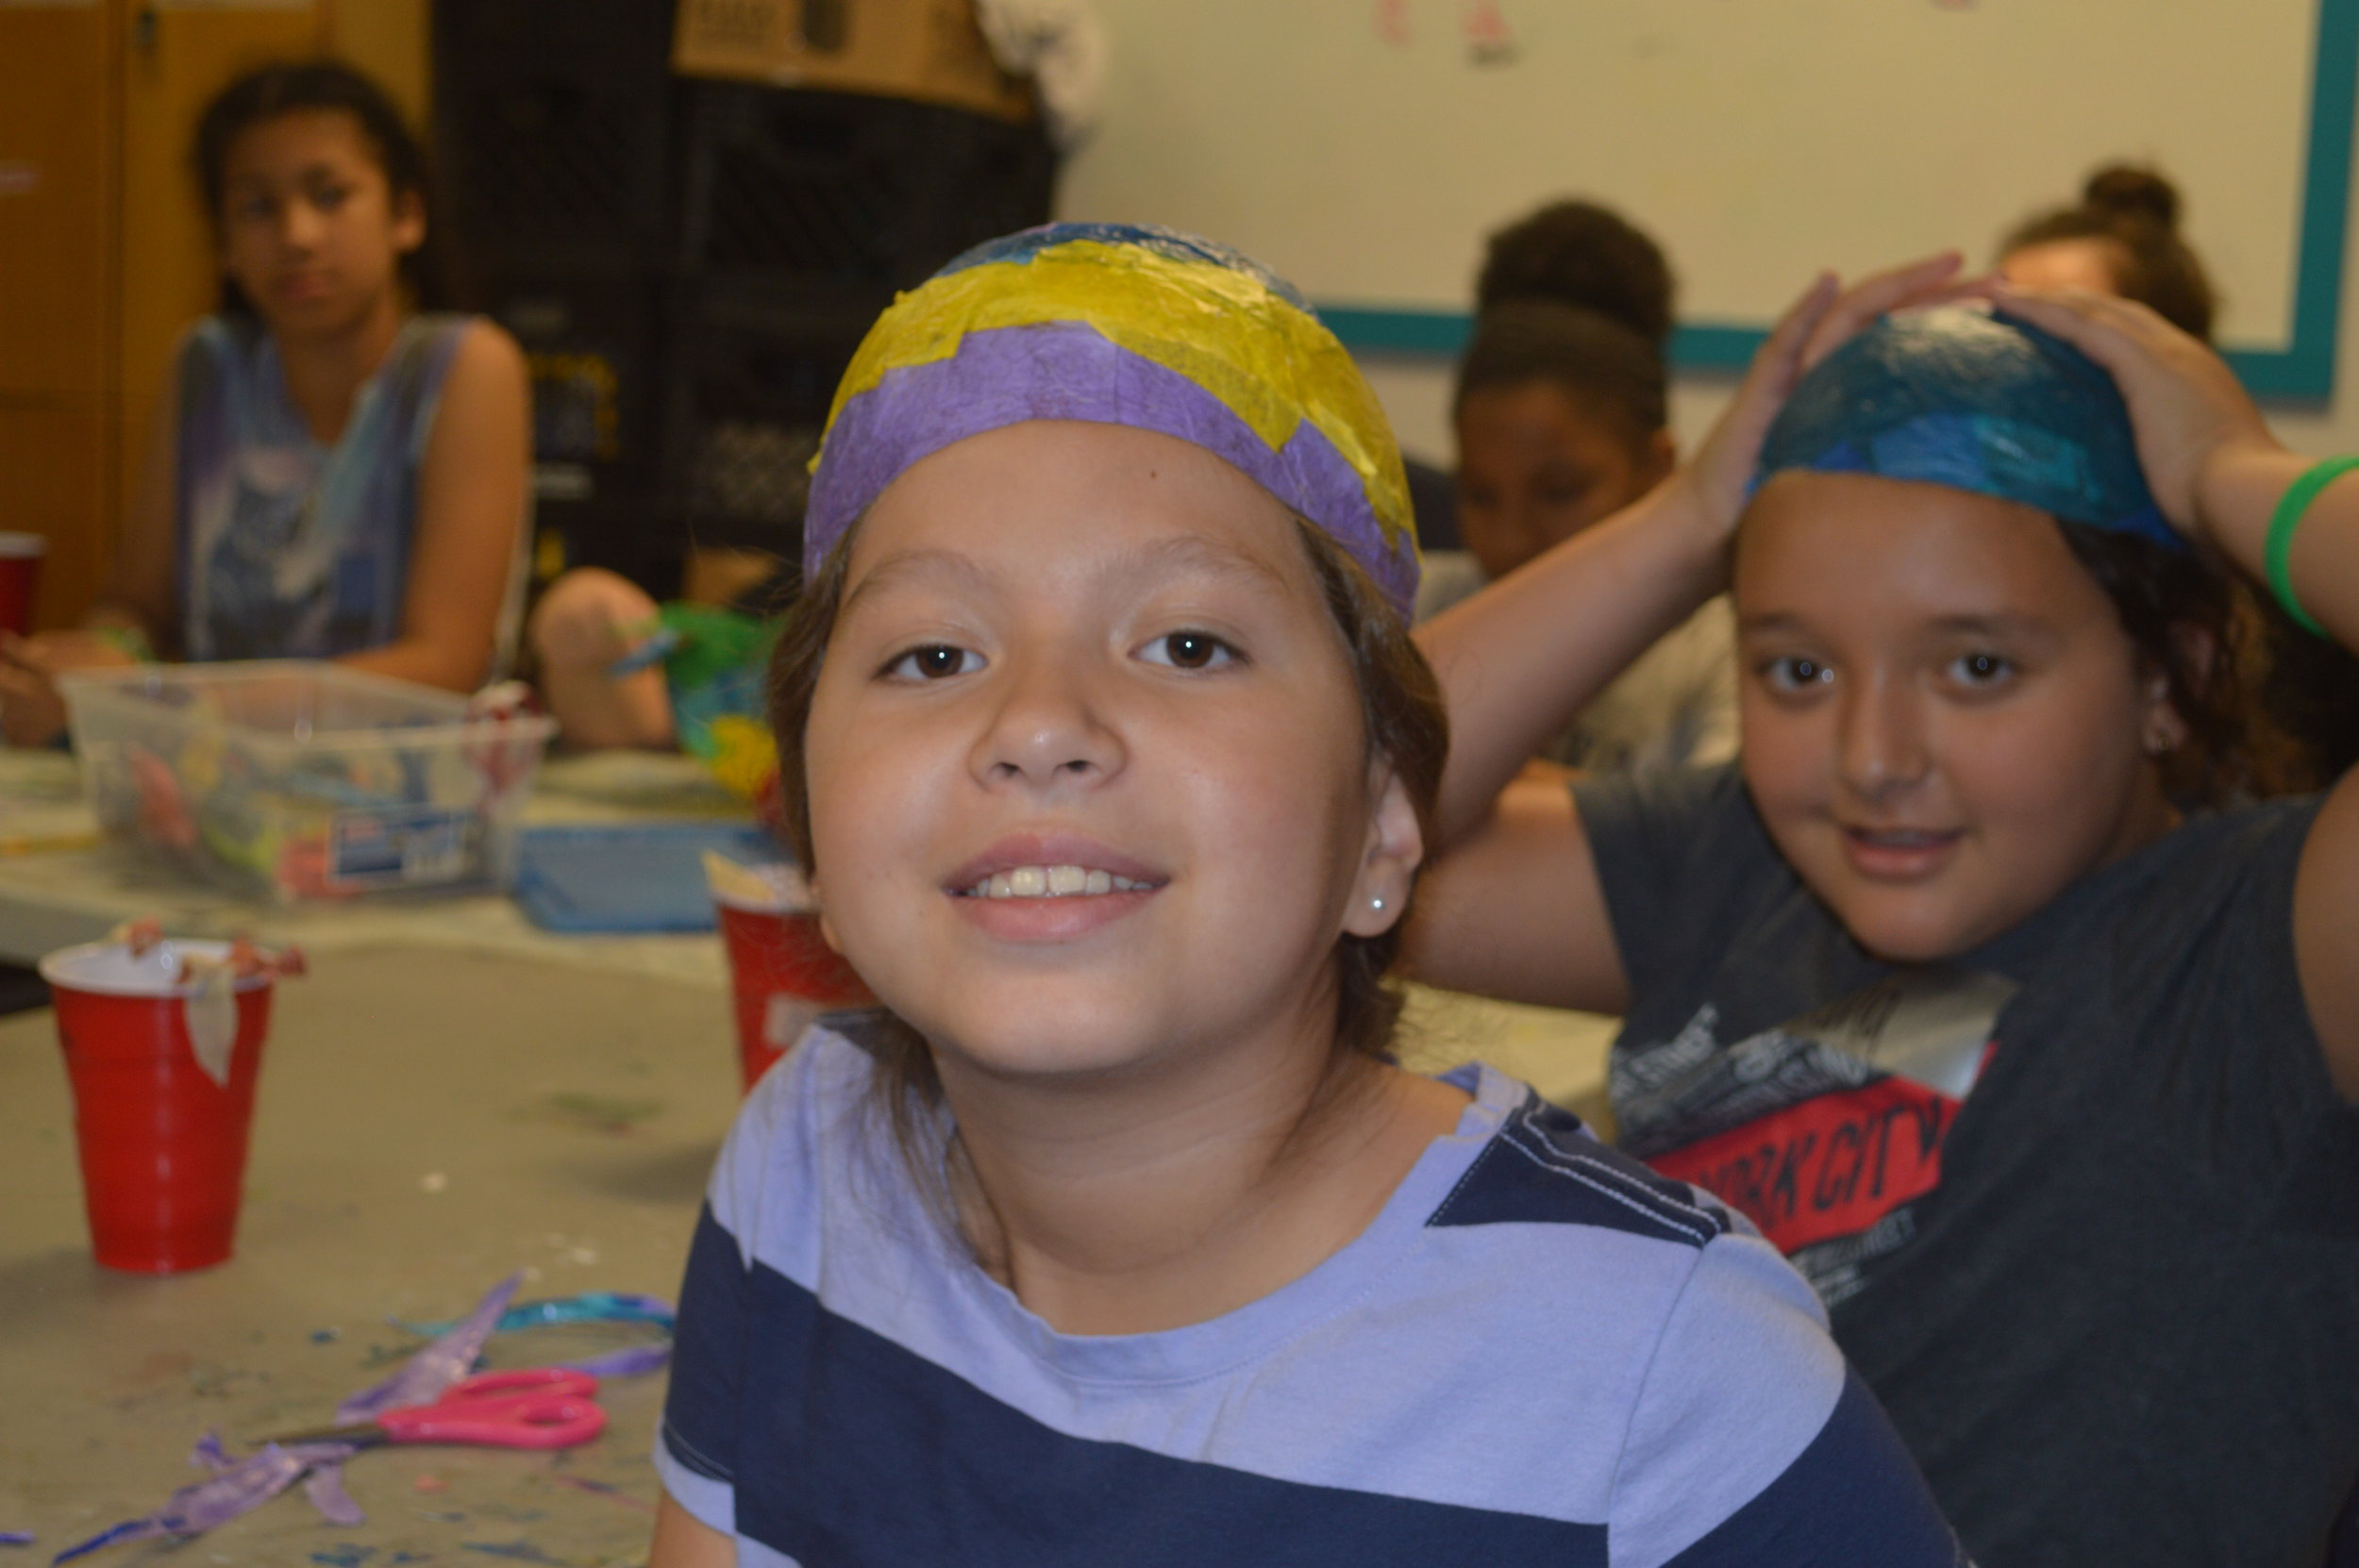 FPR Summer - FPR Summer Programs create enriching opportunities for children and youth the engage in sports, the arts, reading, and career readiness while school is out.